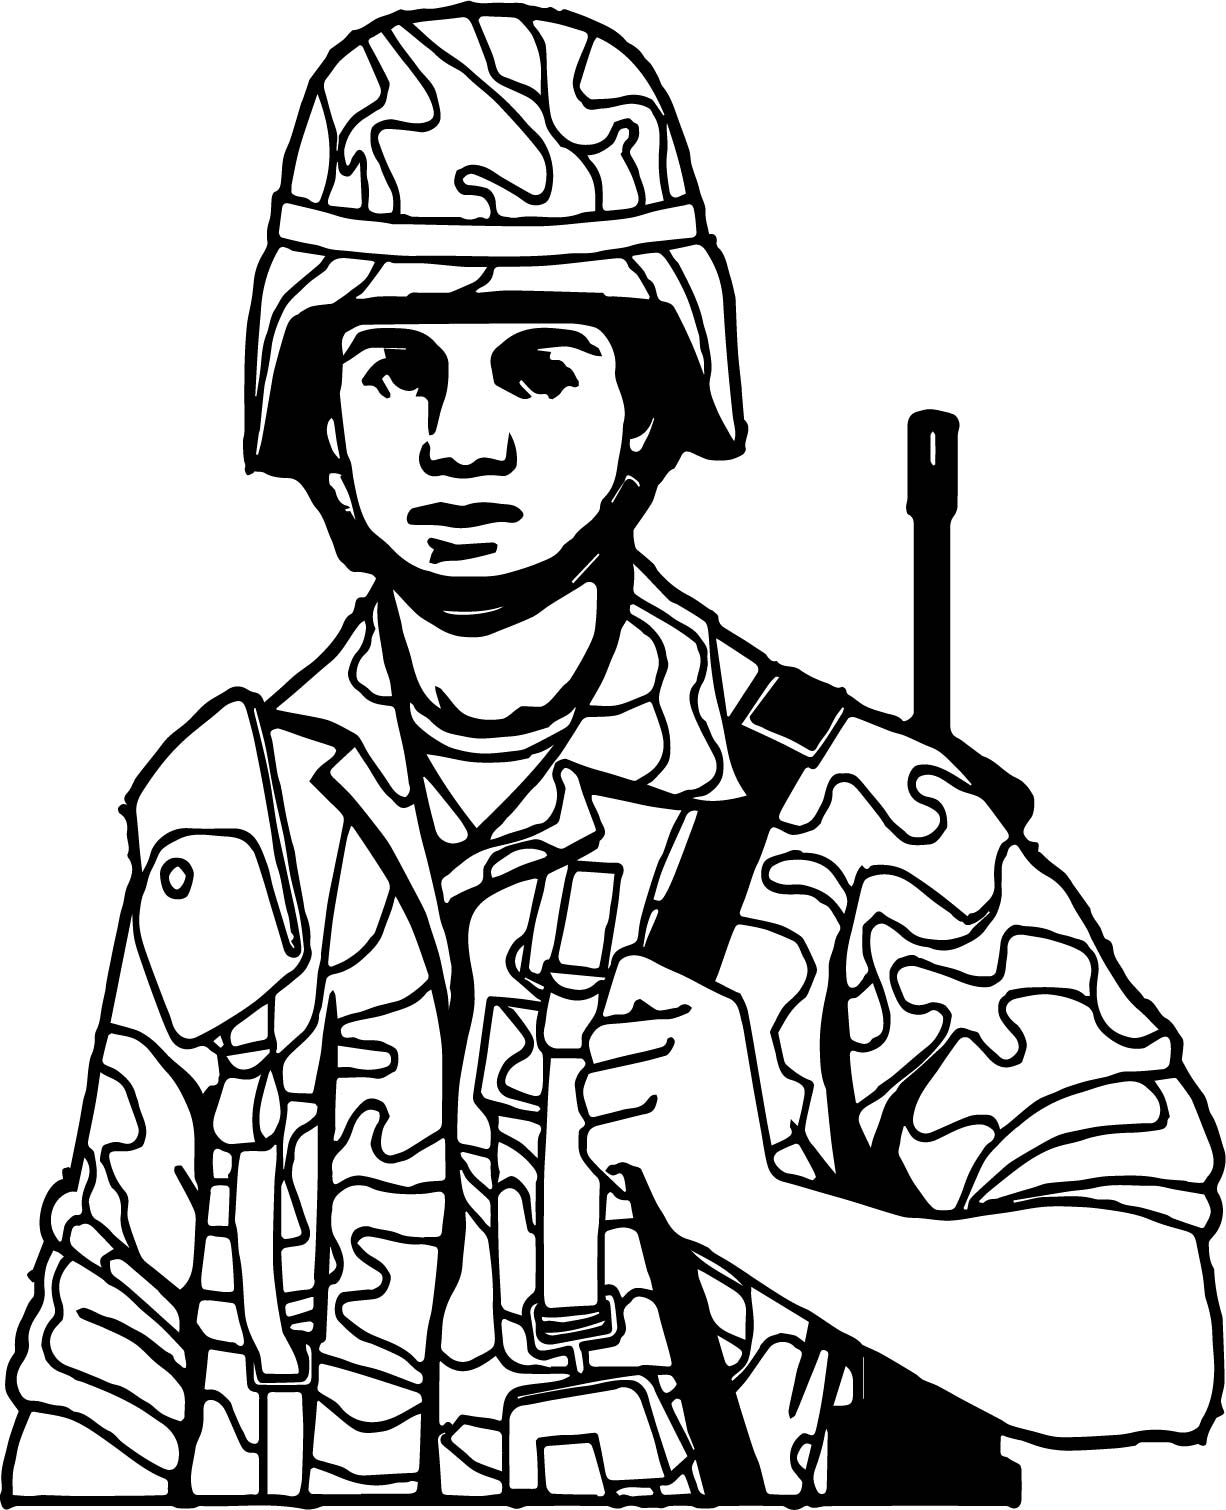 Just Soldier Coloring Page